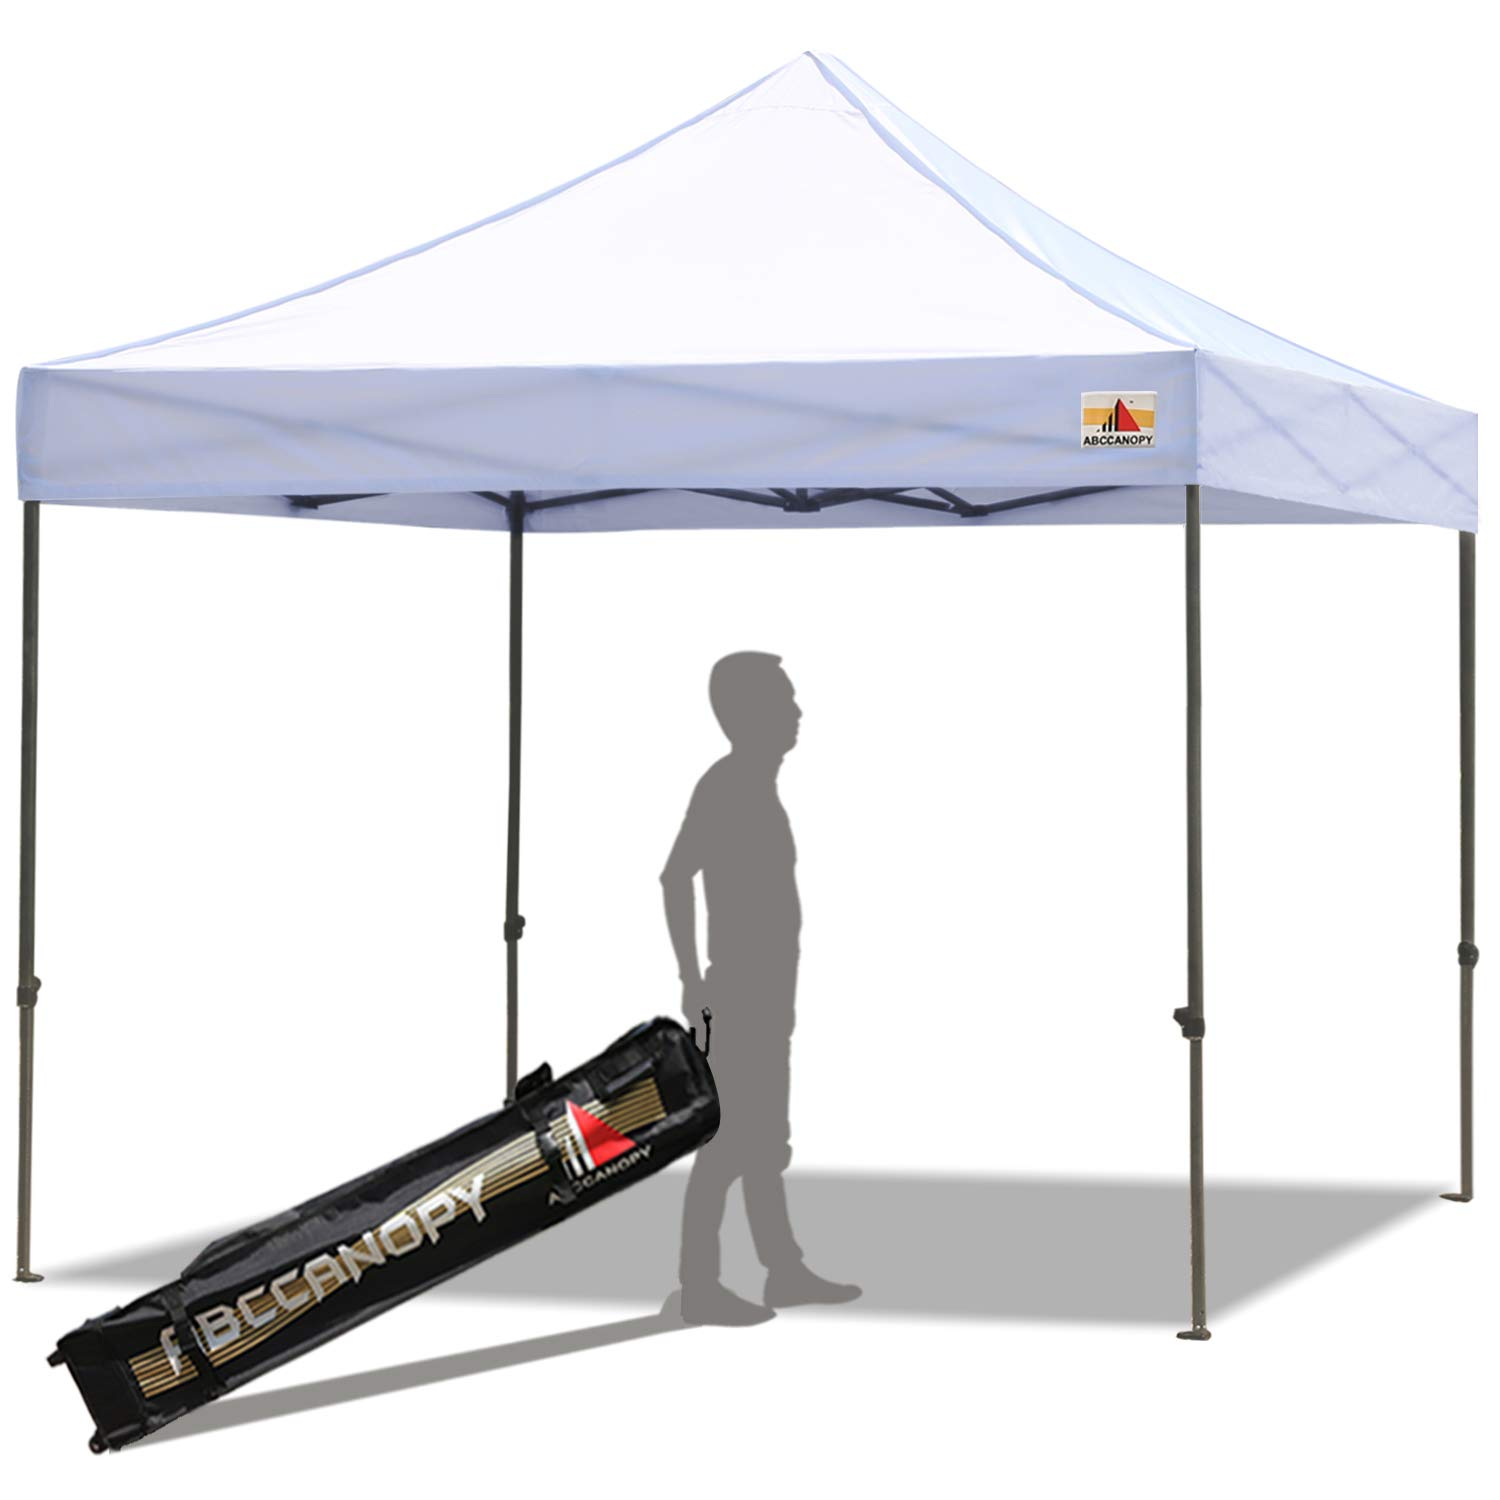 ABCCANOPY Pop up Canopy 10X10 Ft Commercial Instant Canopy Kit with Carrying Bag, 30+ Colors for Your Choice (A for White)